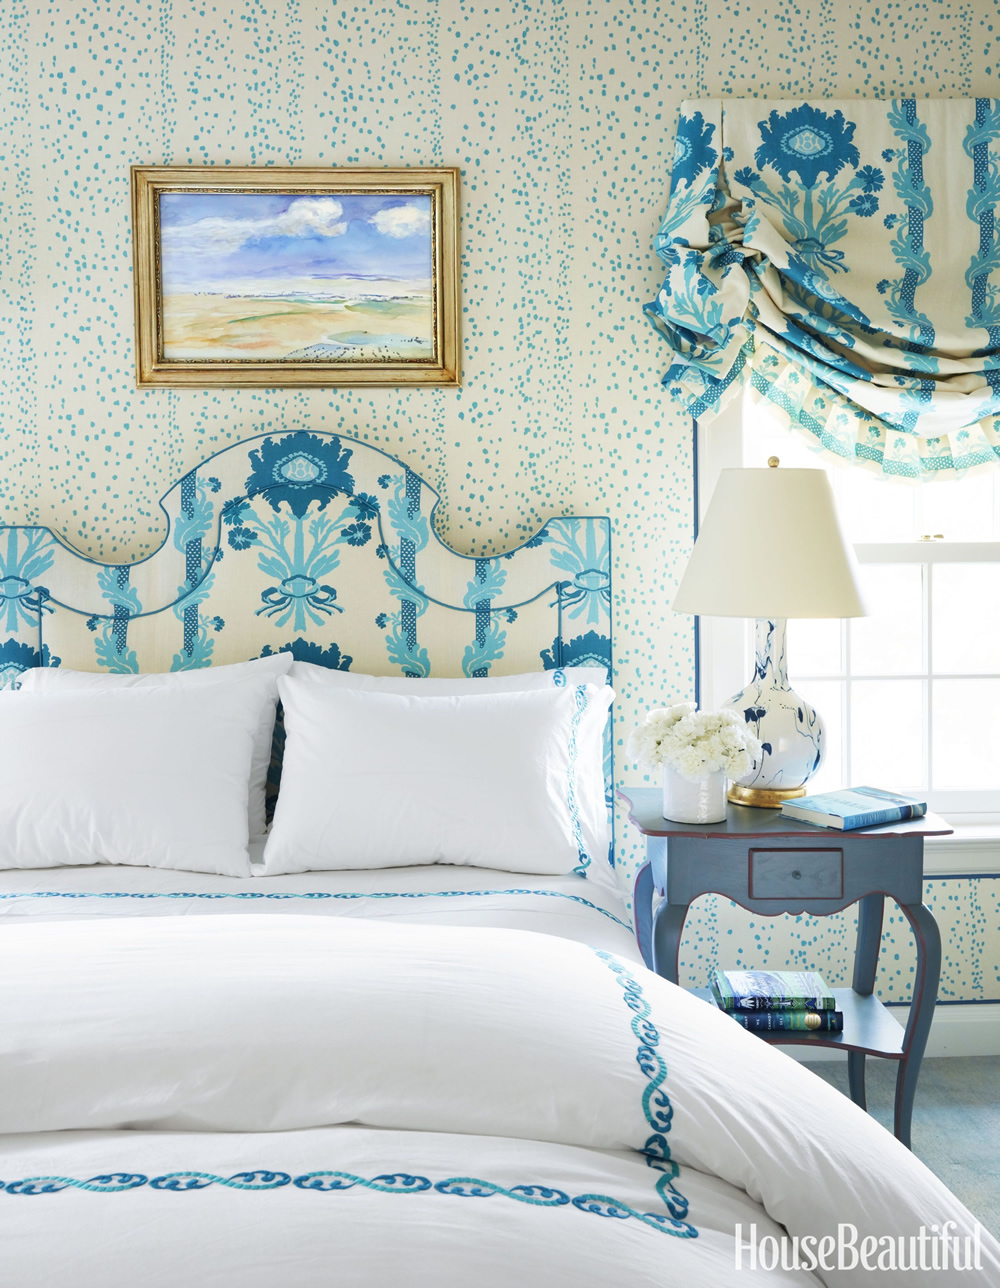 China Seas Rio wallpaper and Quadrille Henriot Floral headboard and window shade in House Beautiful